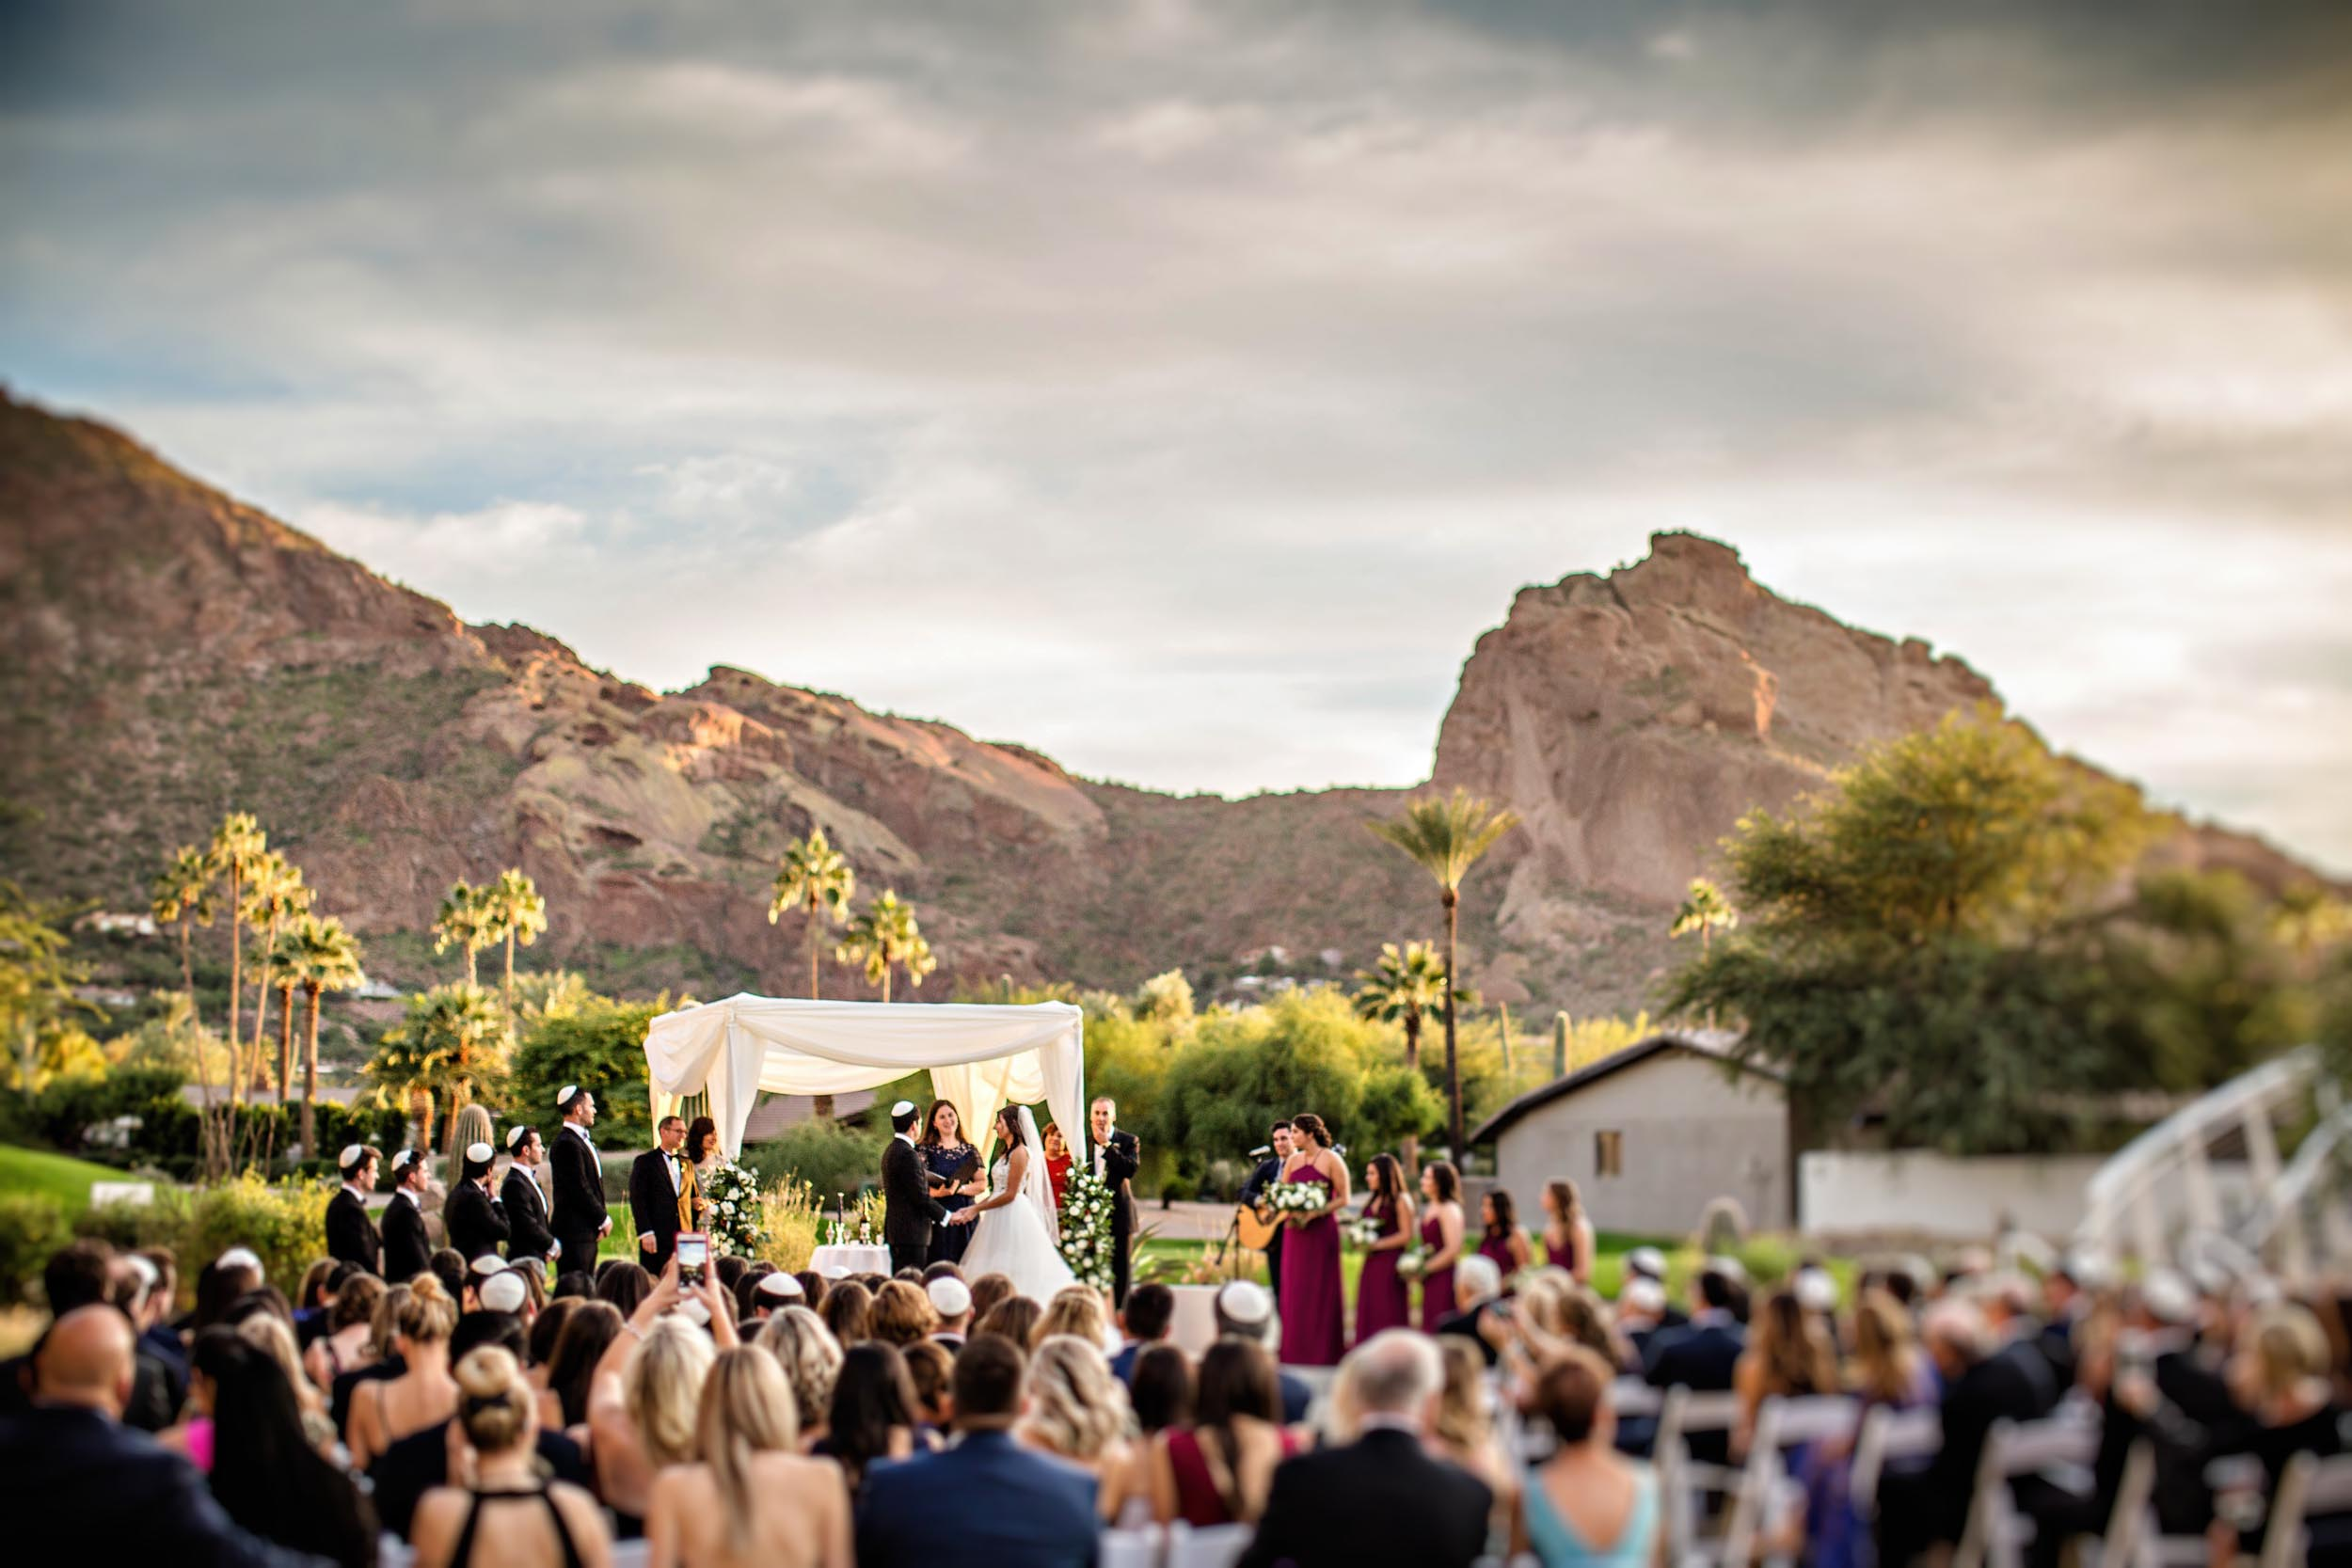 weddings-mountainshadows24.jpg